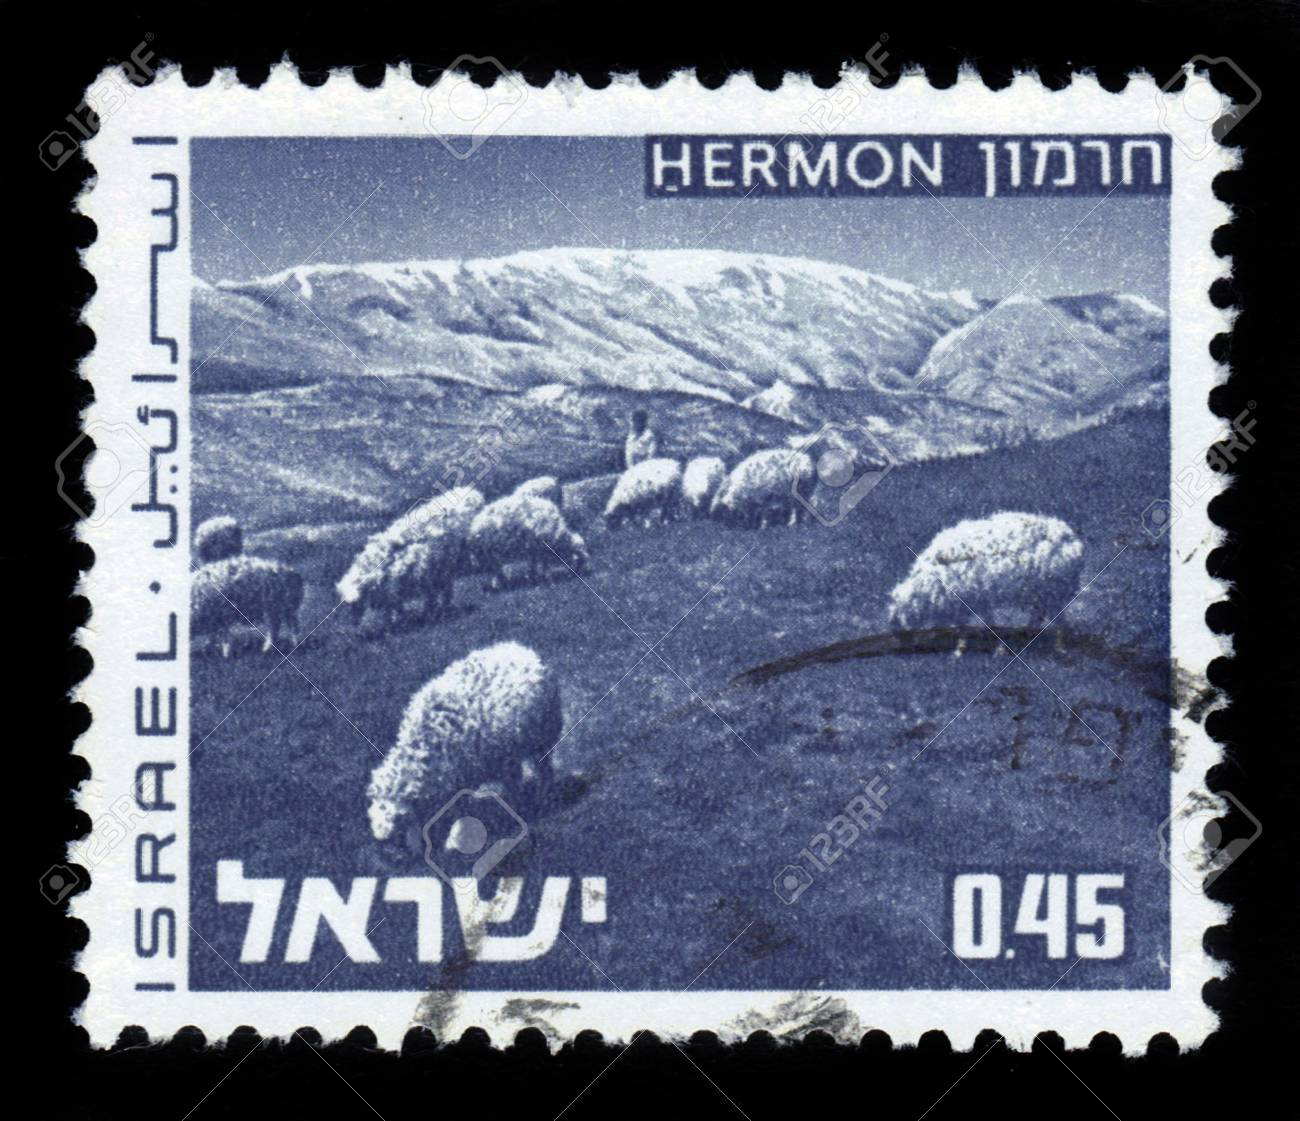 ISRAEL - CIRCA 1973: A stamp printed in Israel, shows herd of sheep on Mount Hermon, series